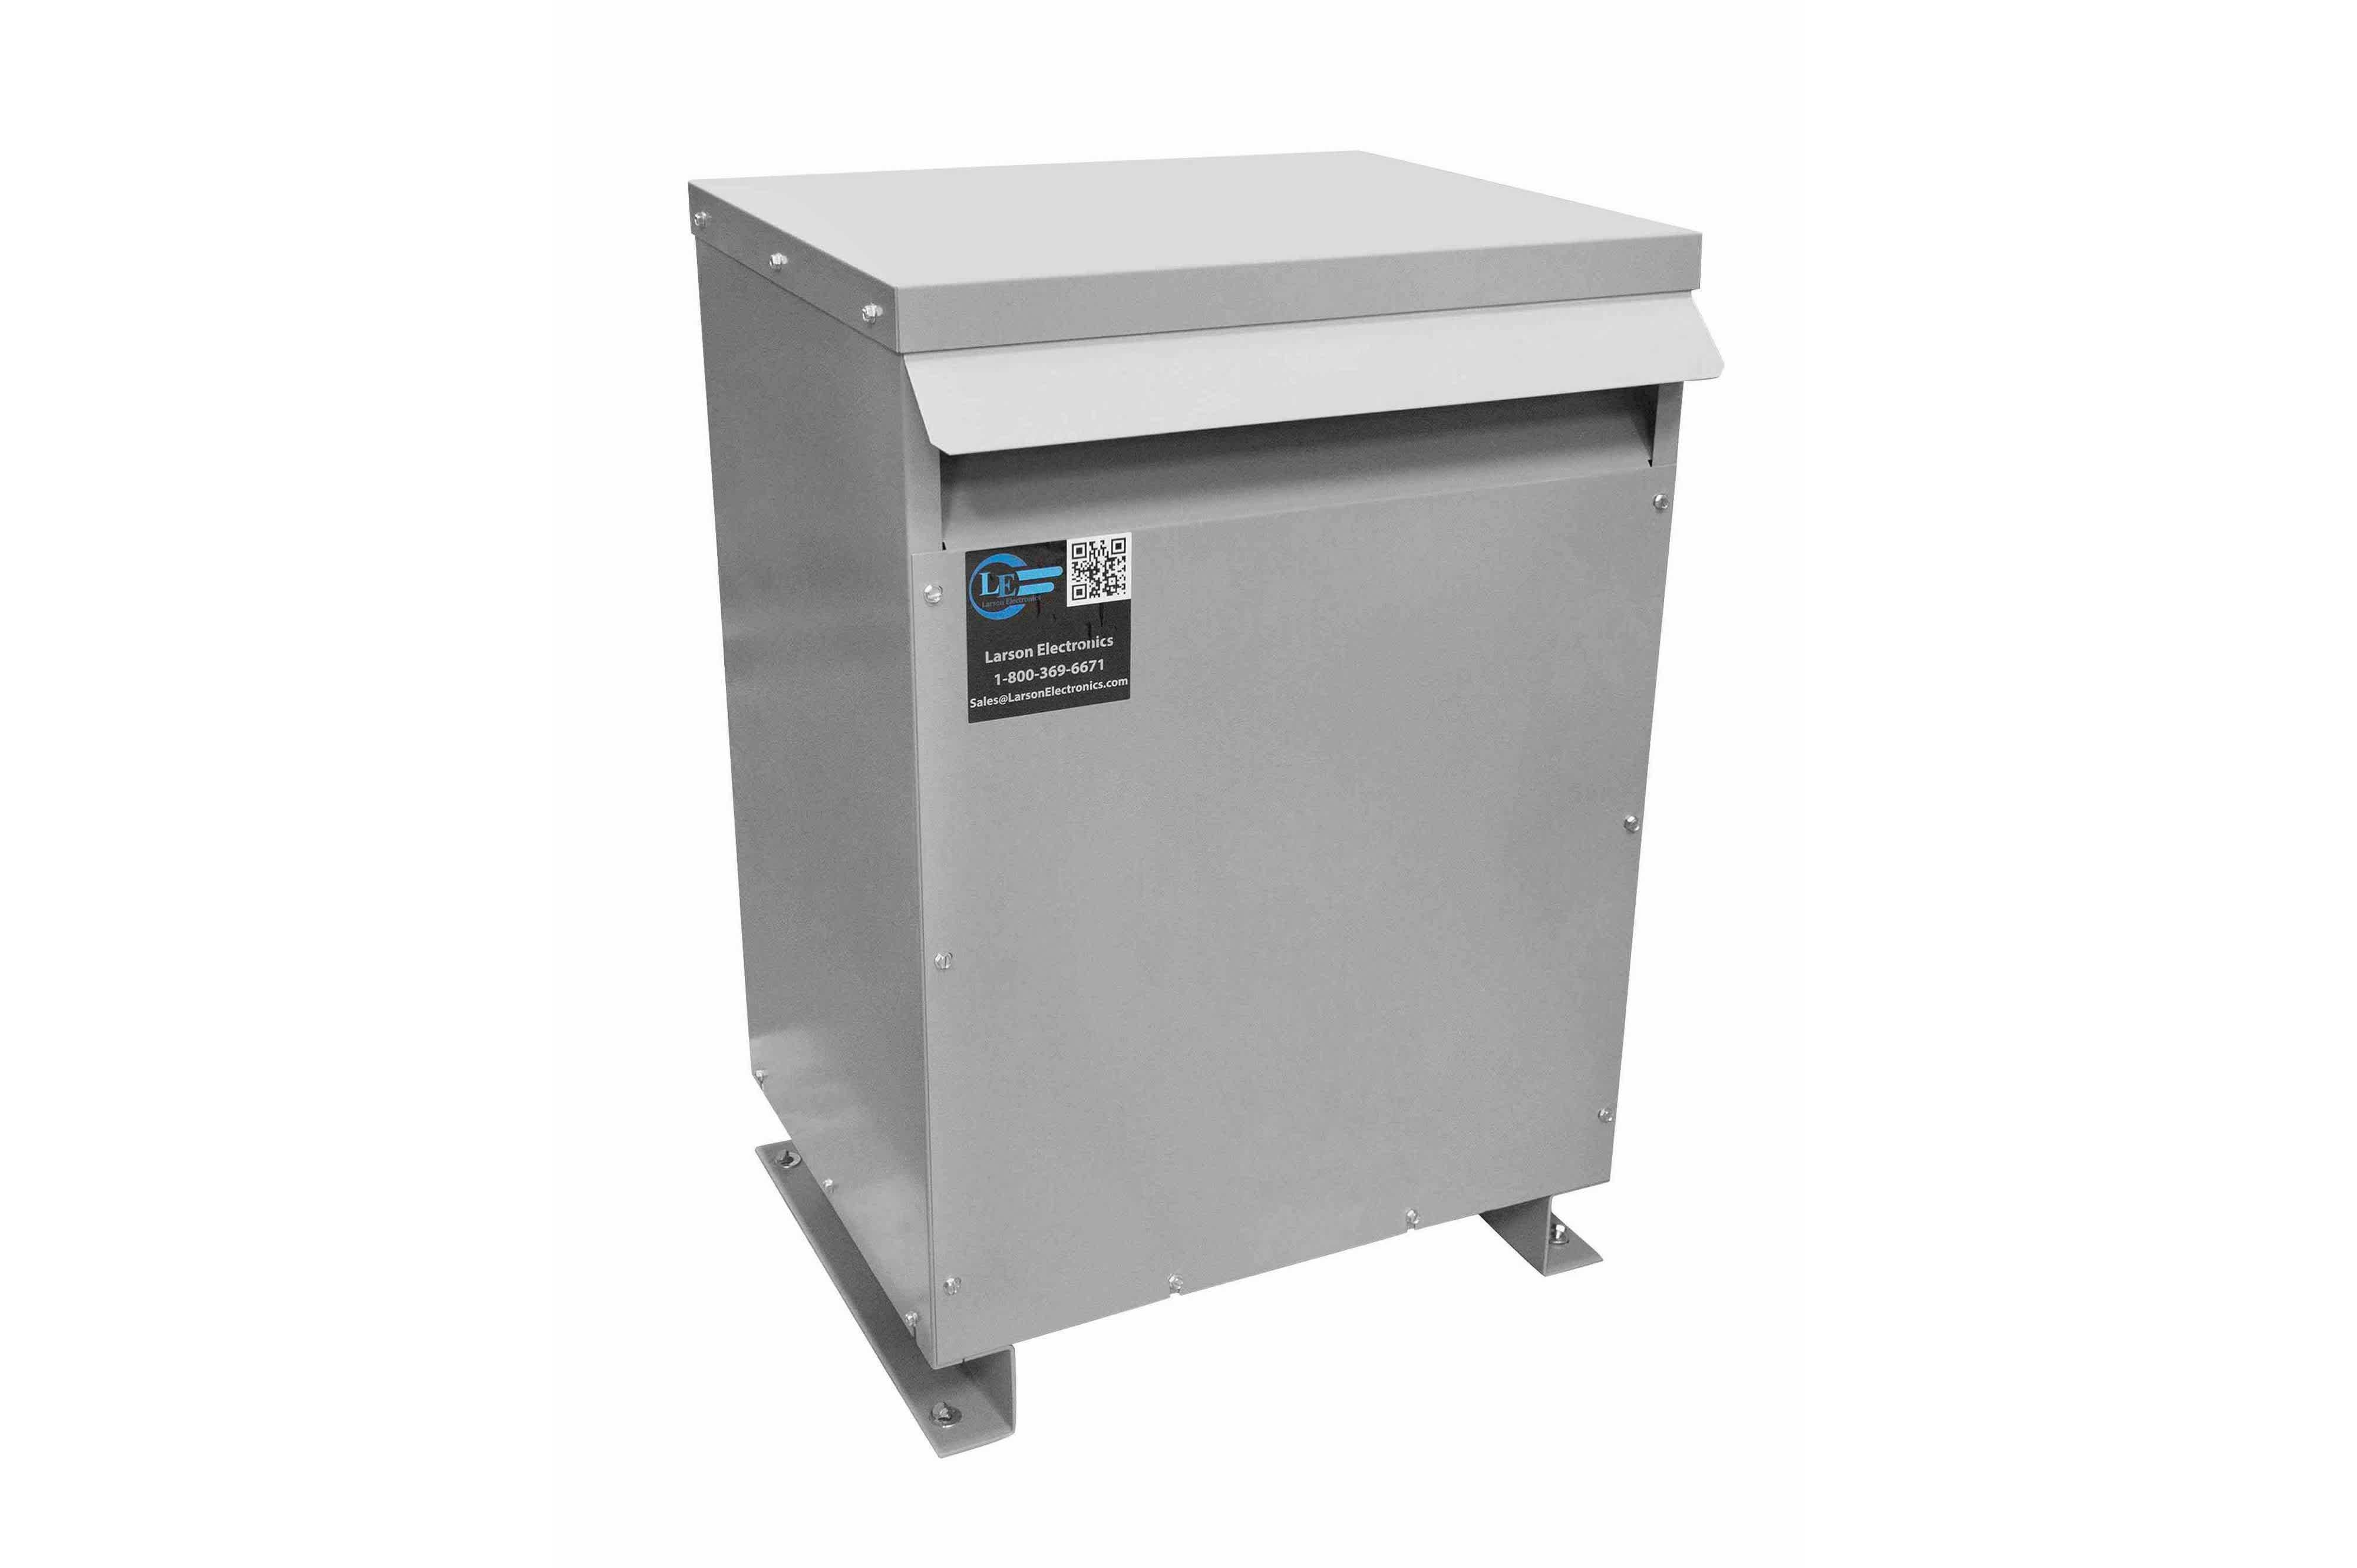 18 kVA 3PH Isolation Transformer, 415V Delta Primary, 240 Delta Secondary, N3R, Ventilated, 60 Hz